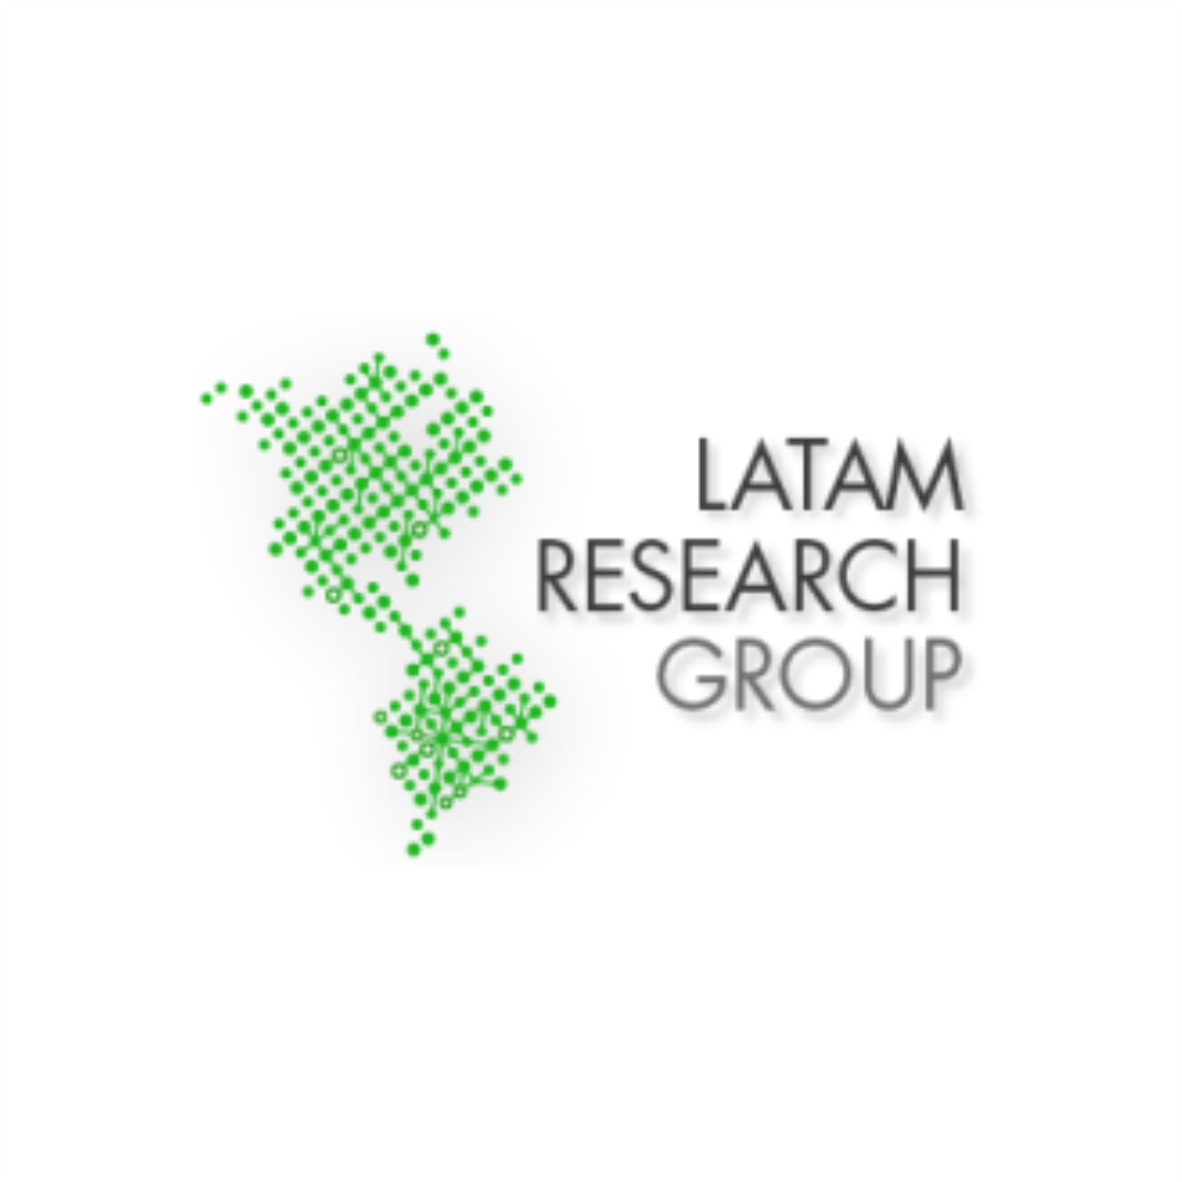 LATAM Research Group